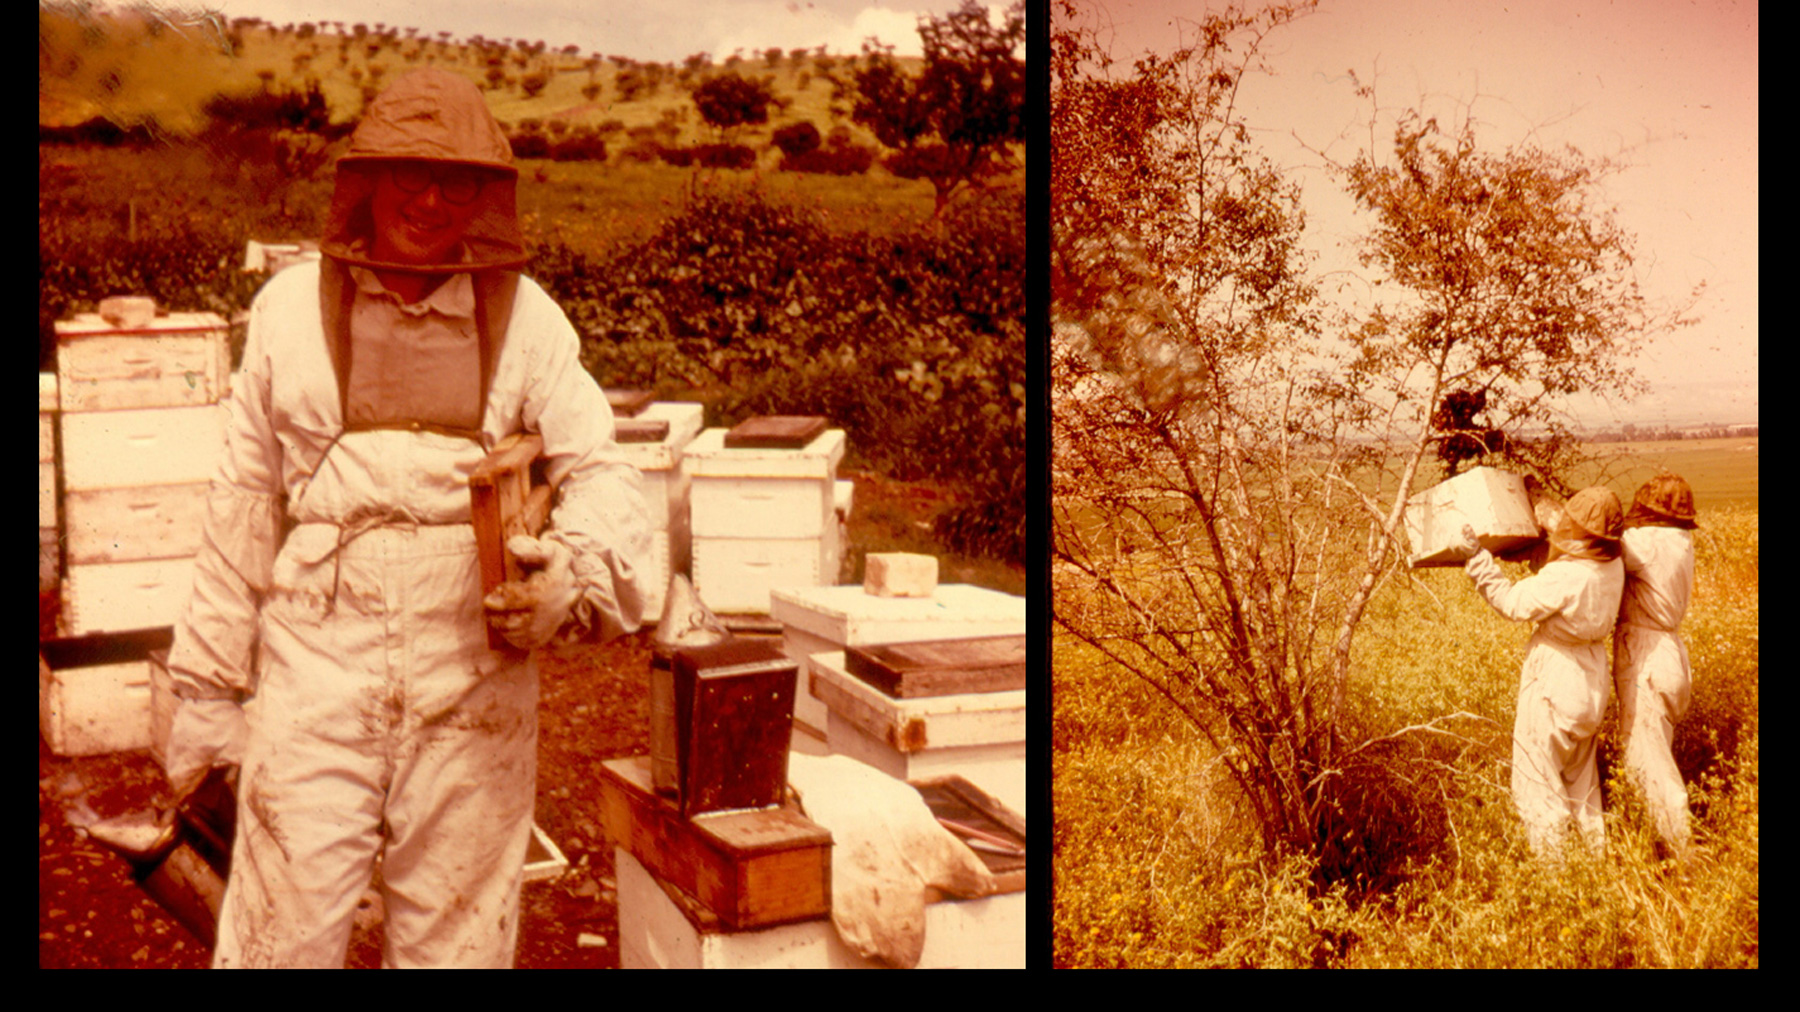 sepia-toned image of a decades-younger Gene Robinson wearing full beekeeping regalia